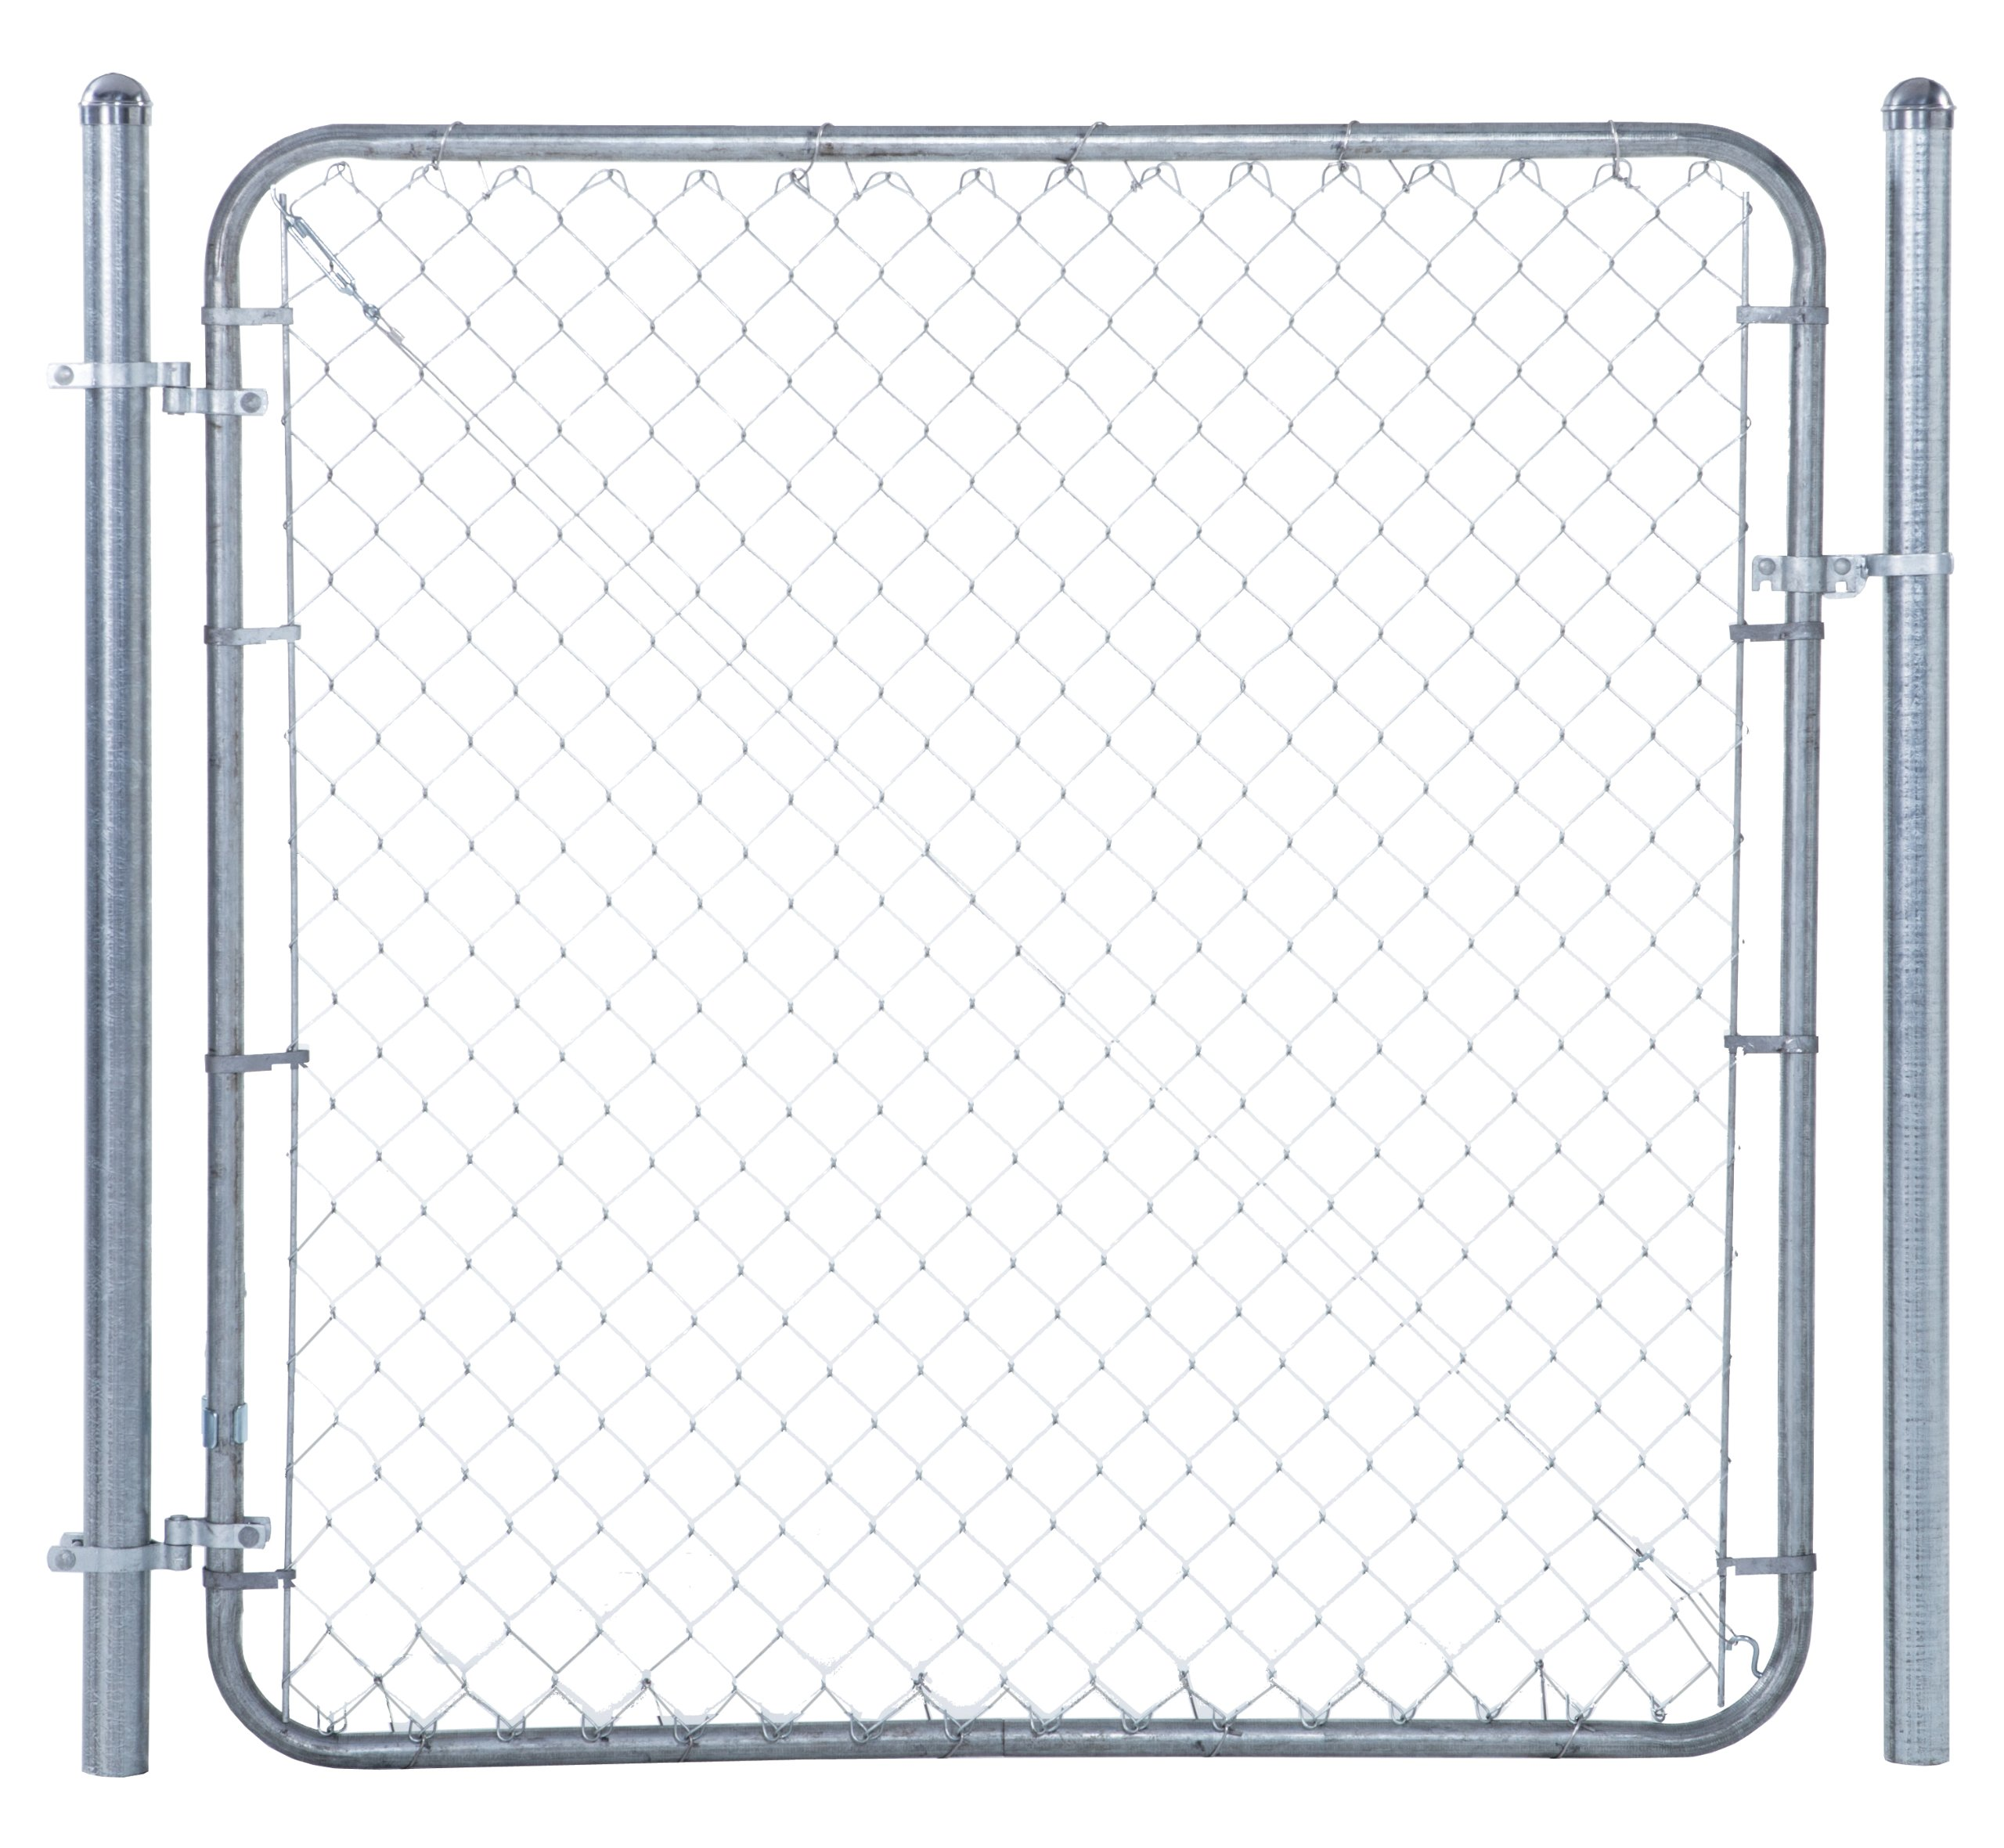 Fit-Right Chain Link Fence Walk-through Gate Kit (24''-72'' wide x 4' high)